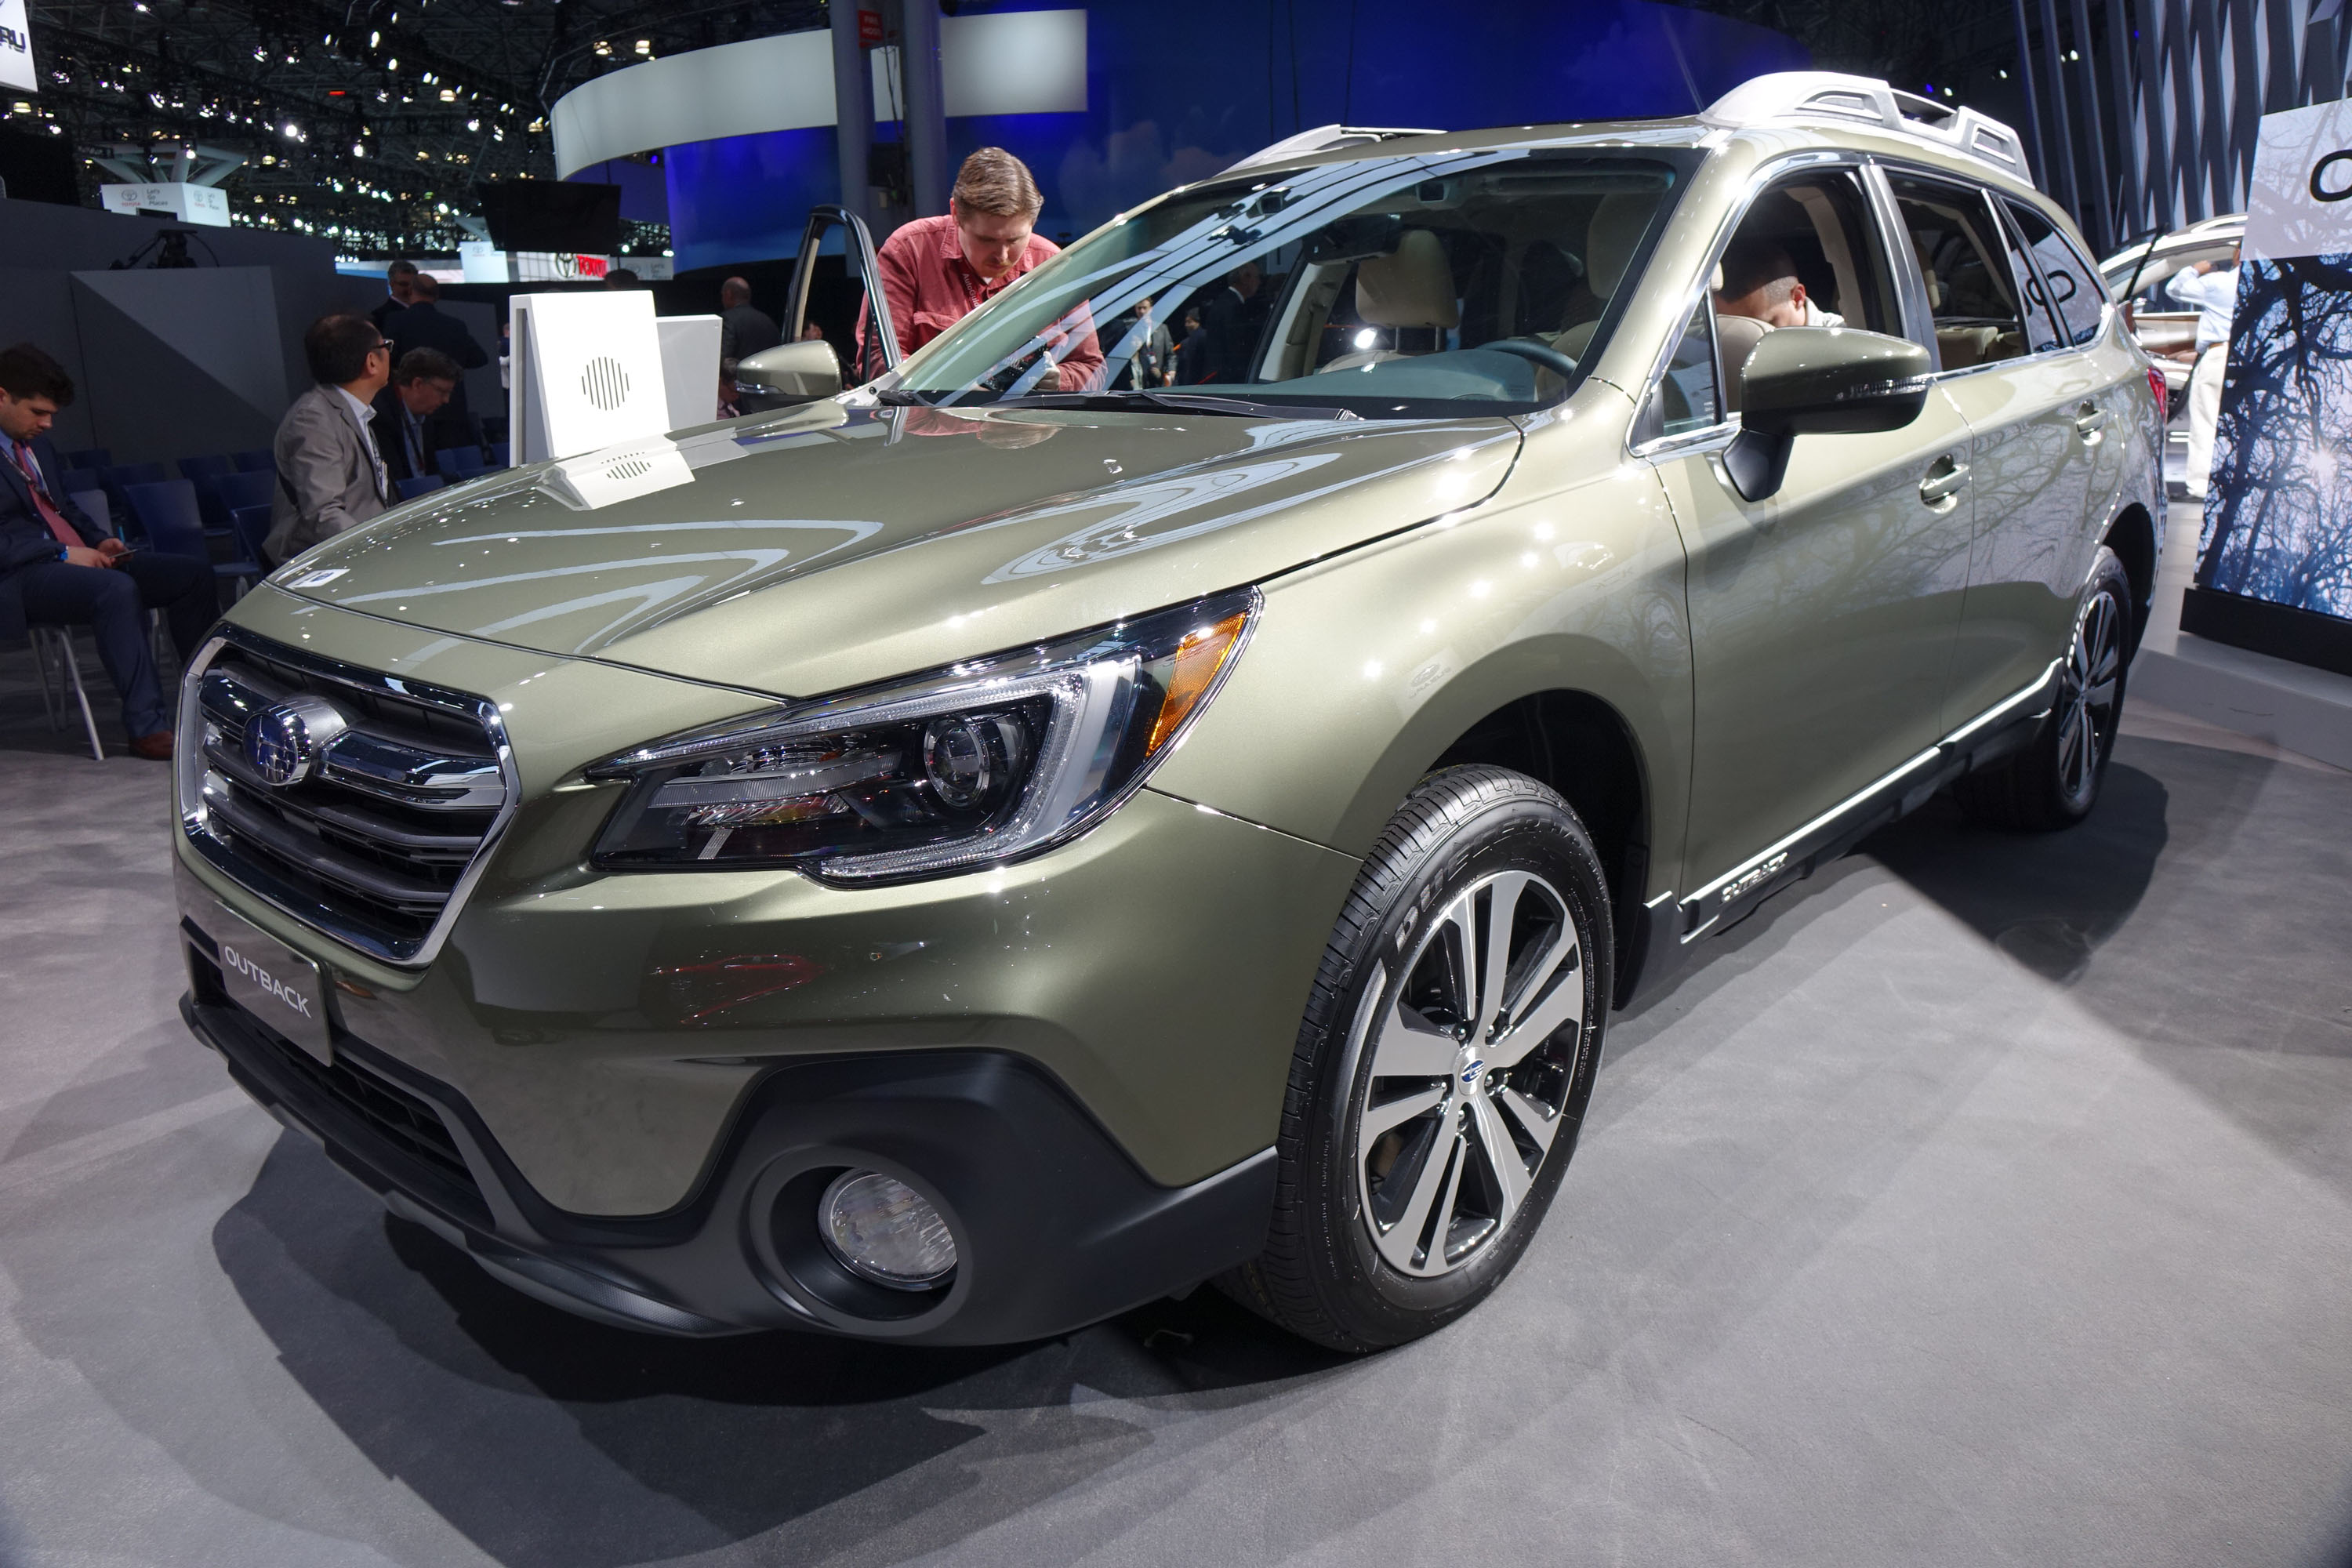 2018 subaru pickup. modren pickup with 2018 subaru pickup c